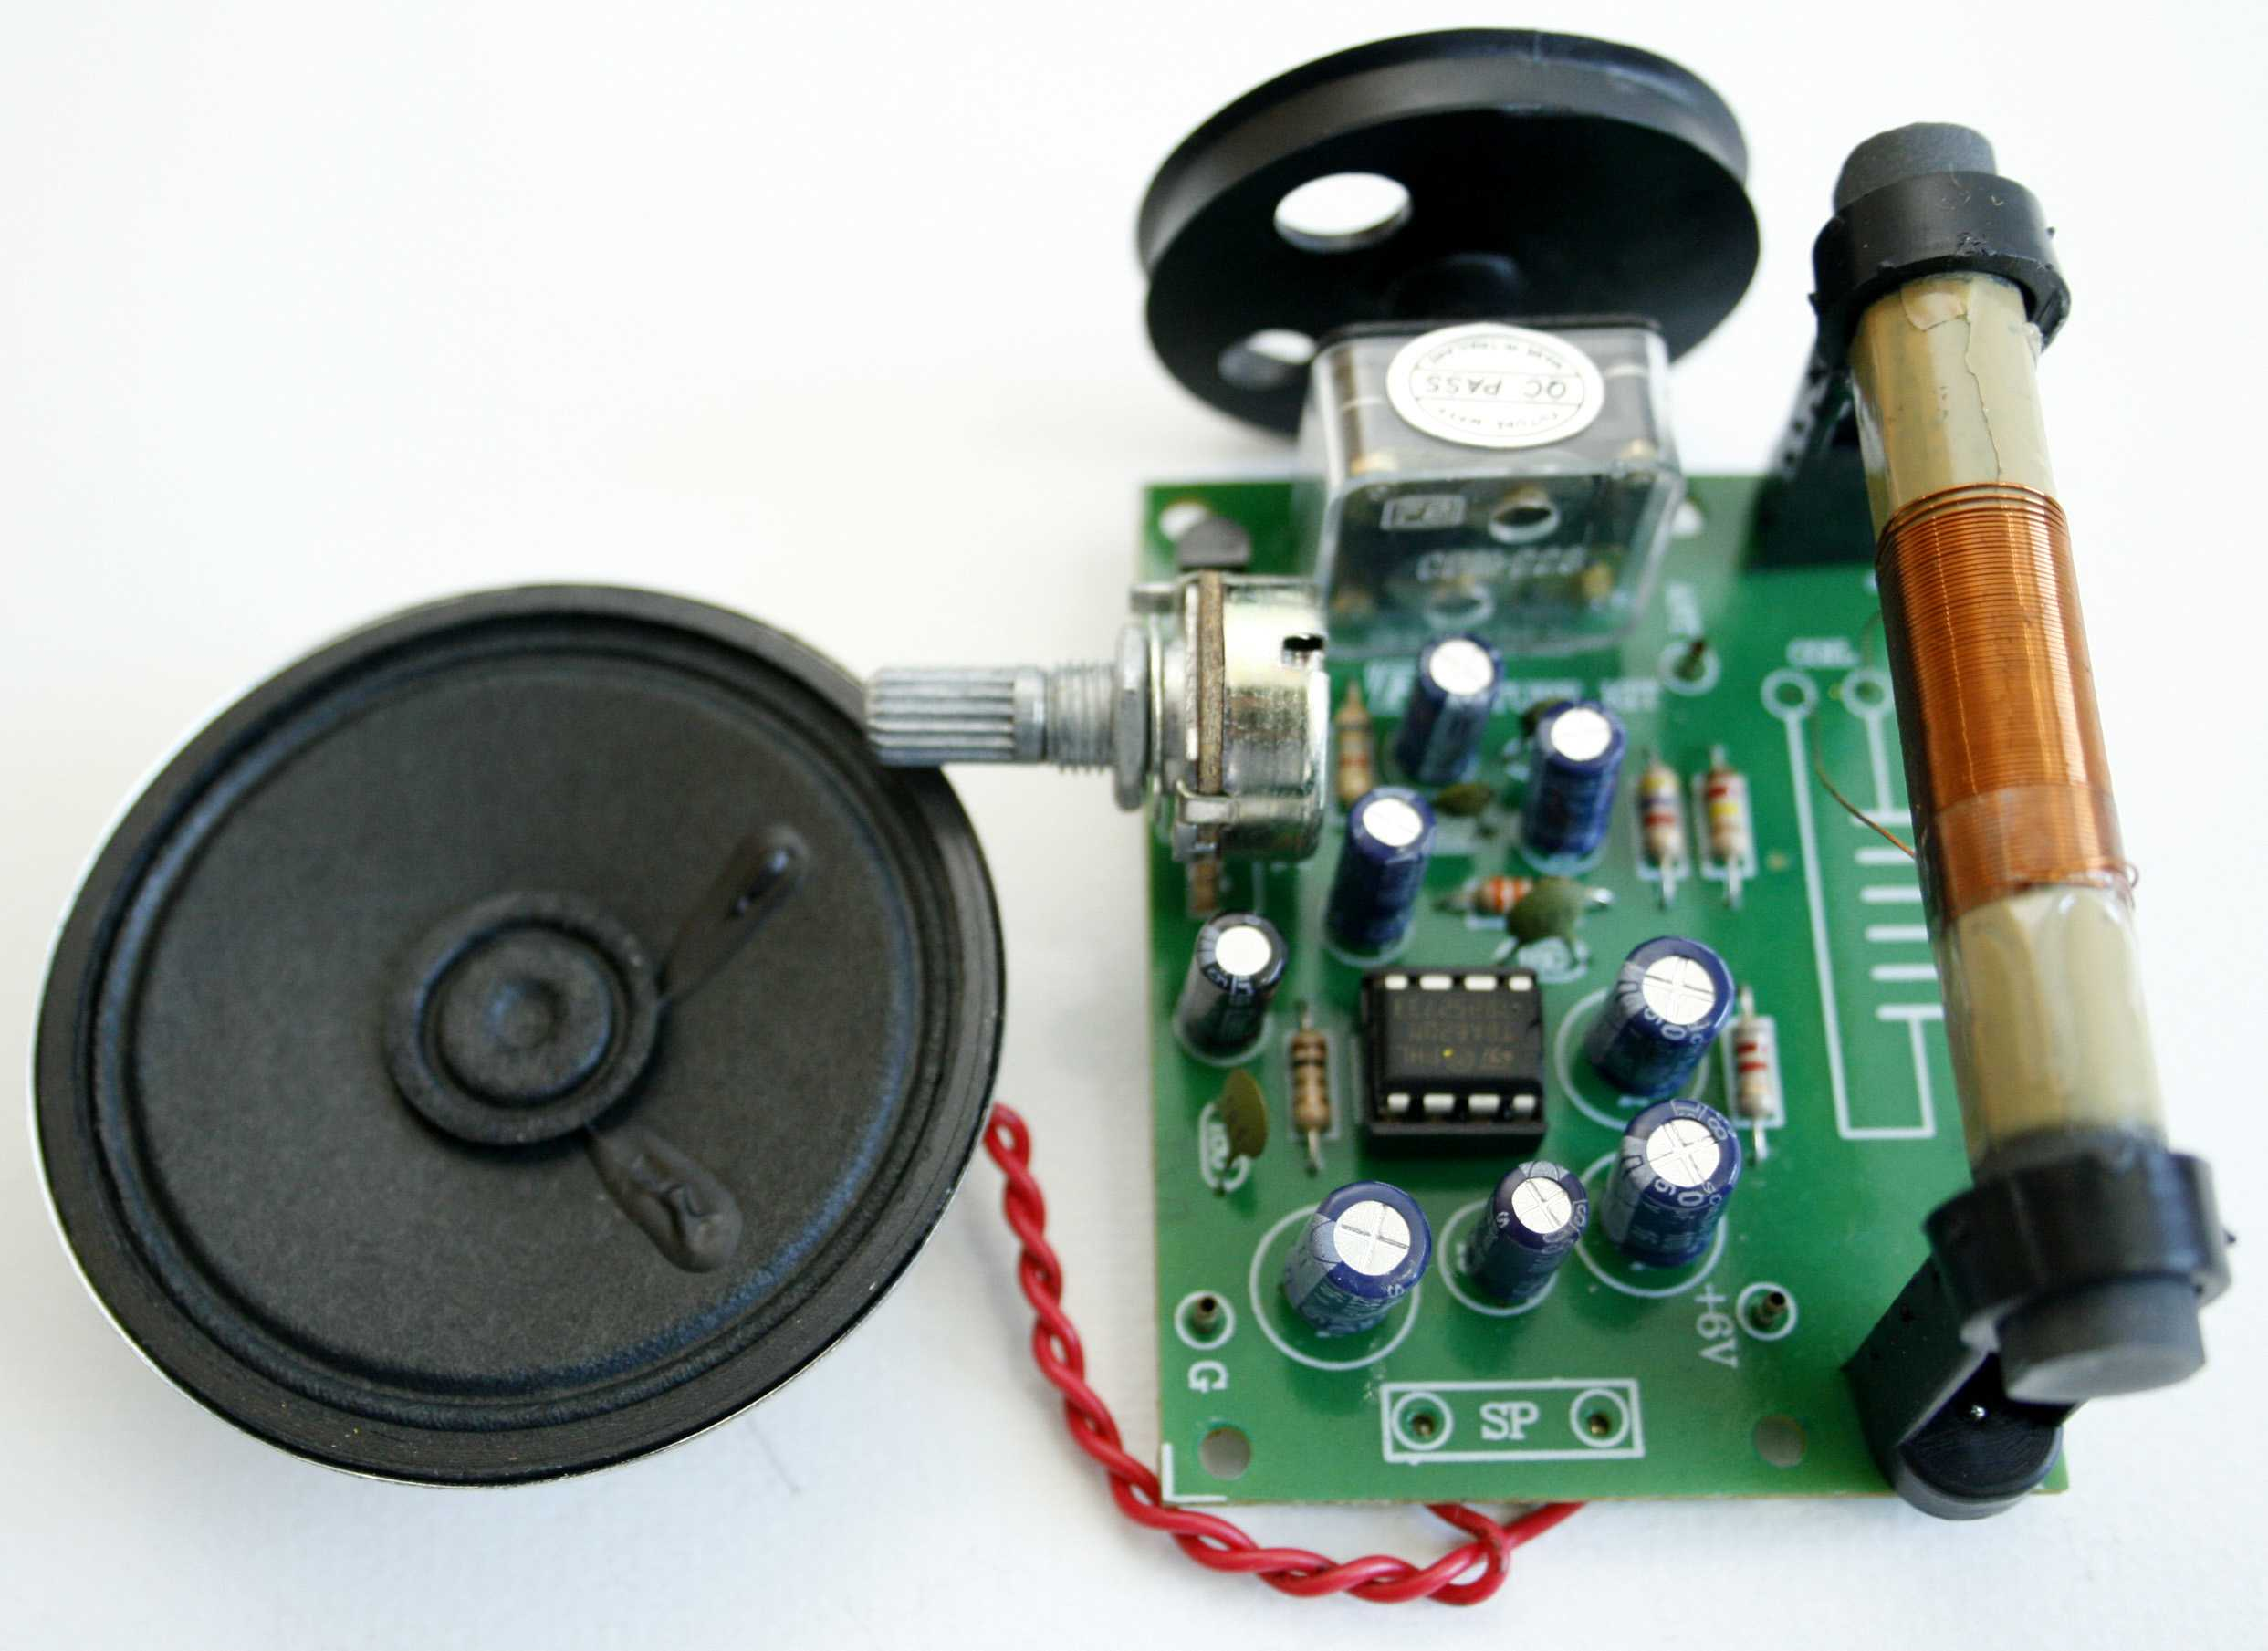 FK708: AM. RADIO RECEIVER Kit